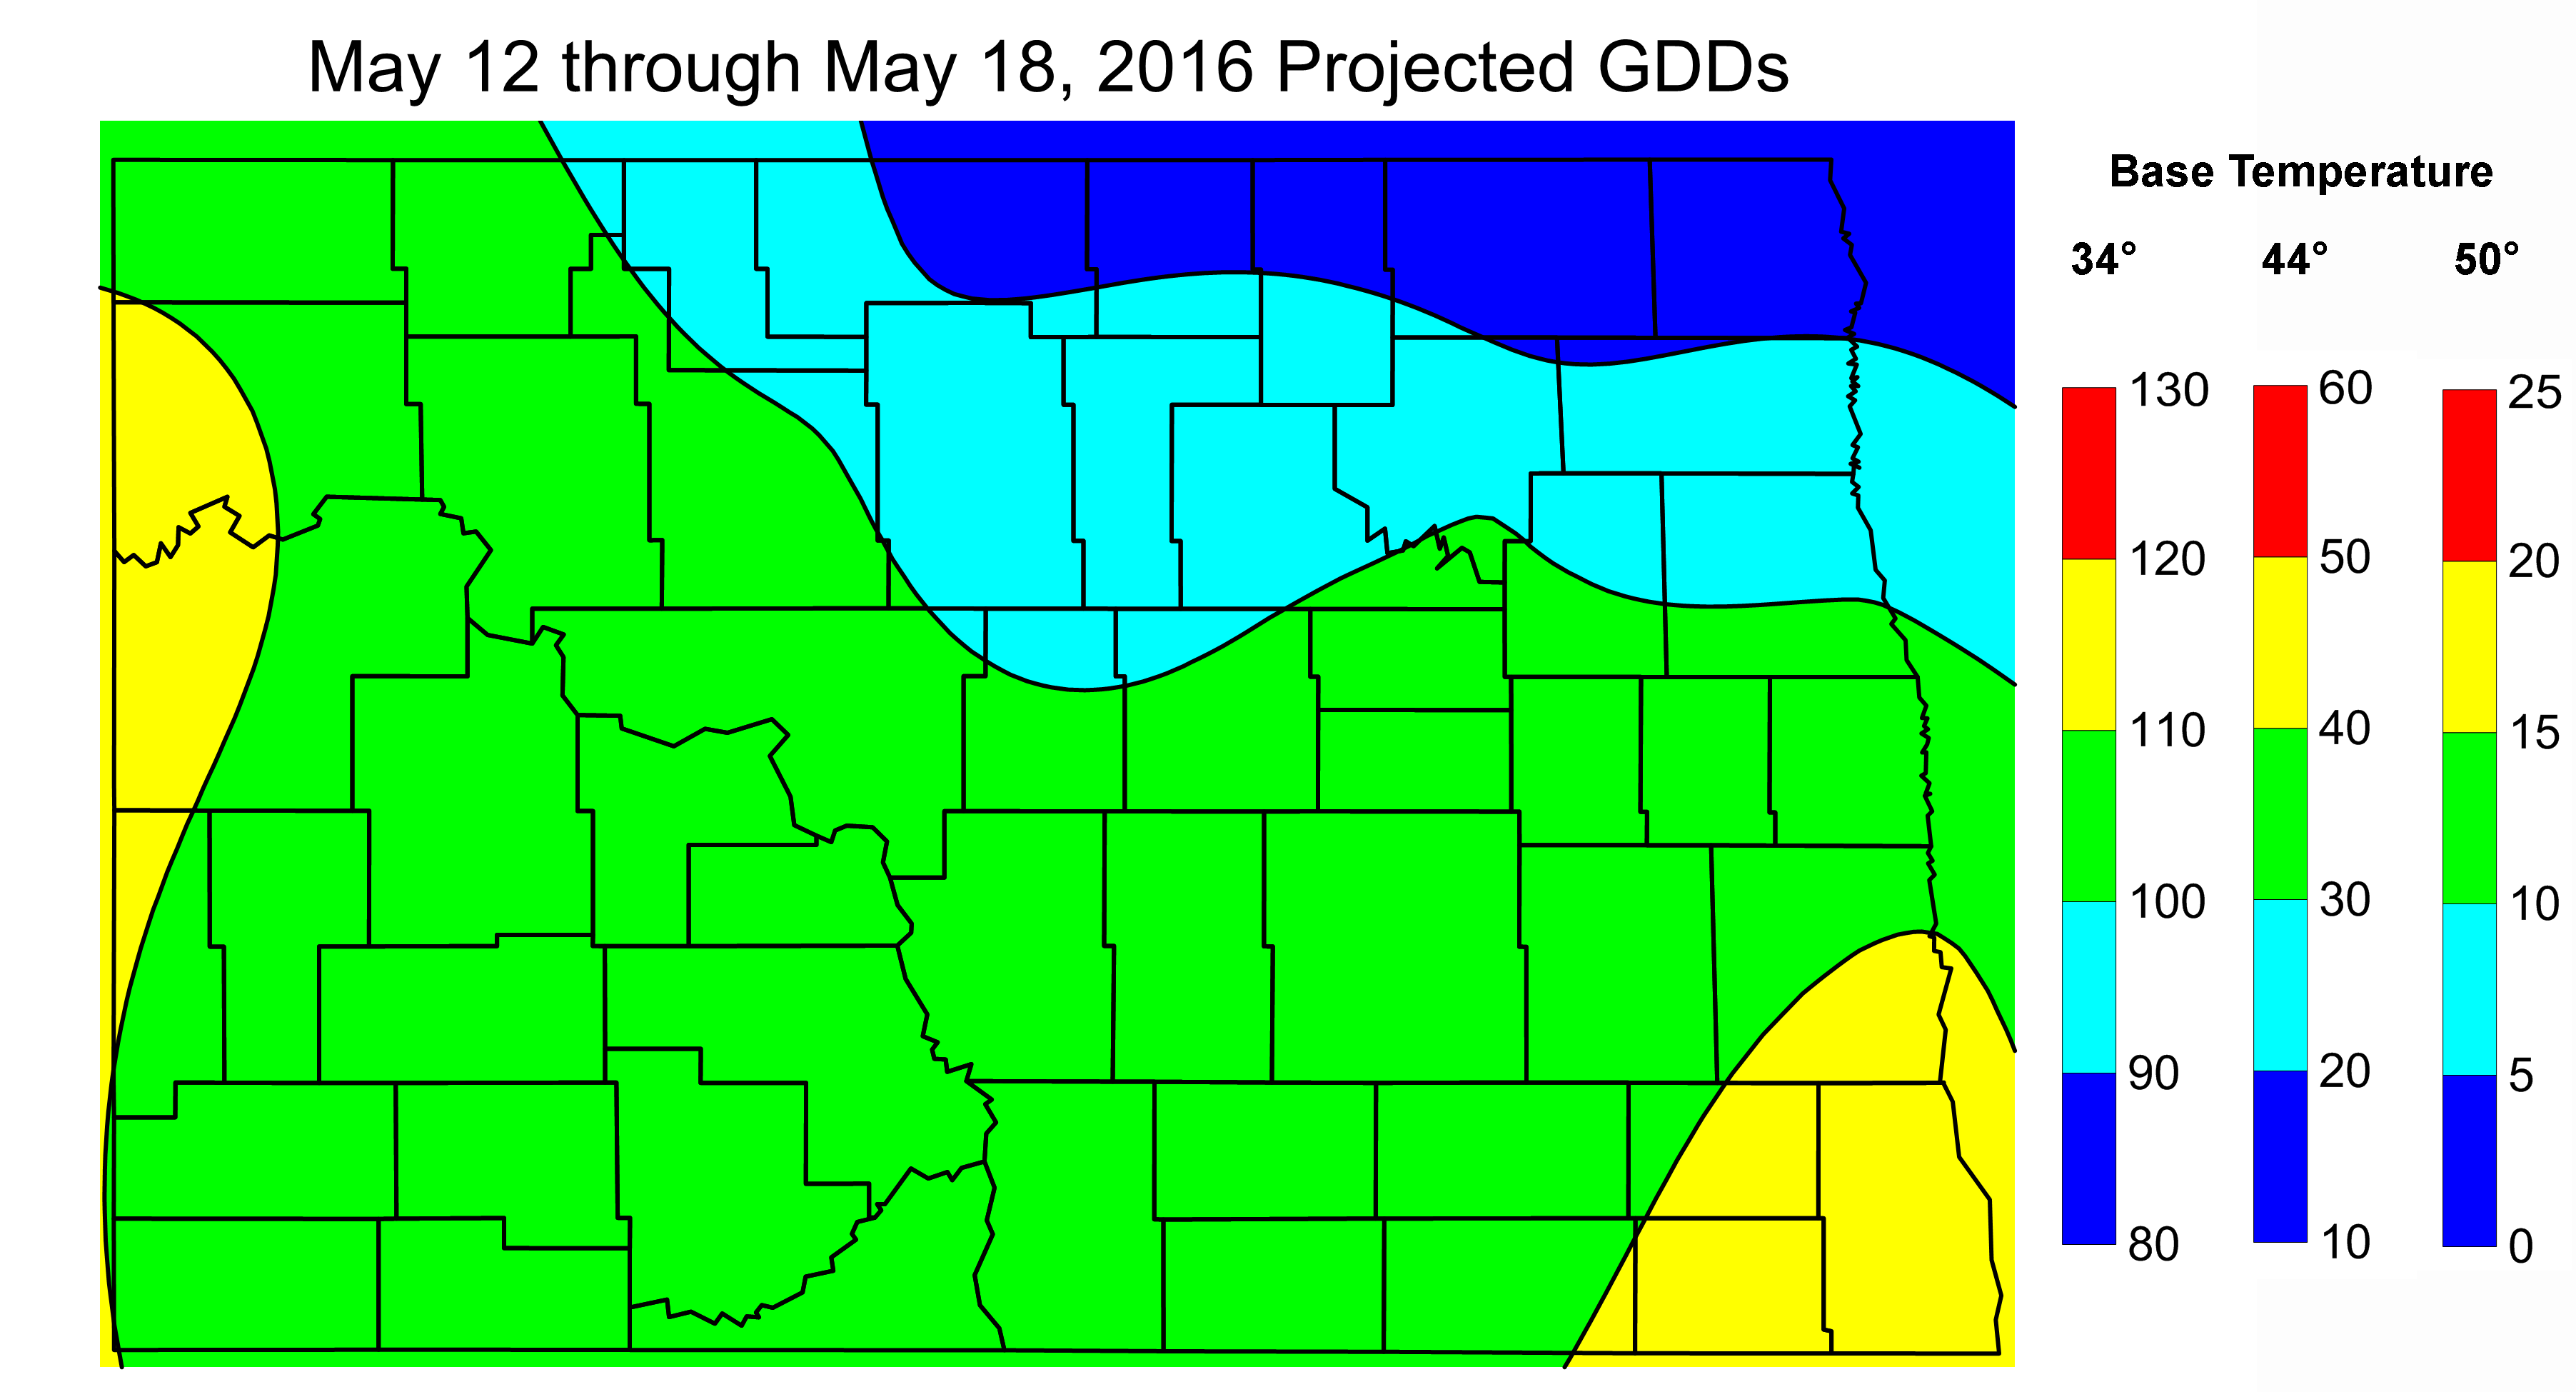 Figure 2. Projected Growing Degree Days from May 12 through May 18, 2016